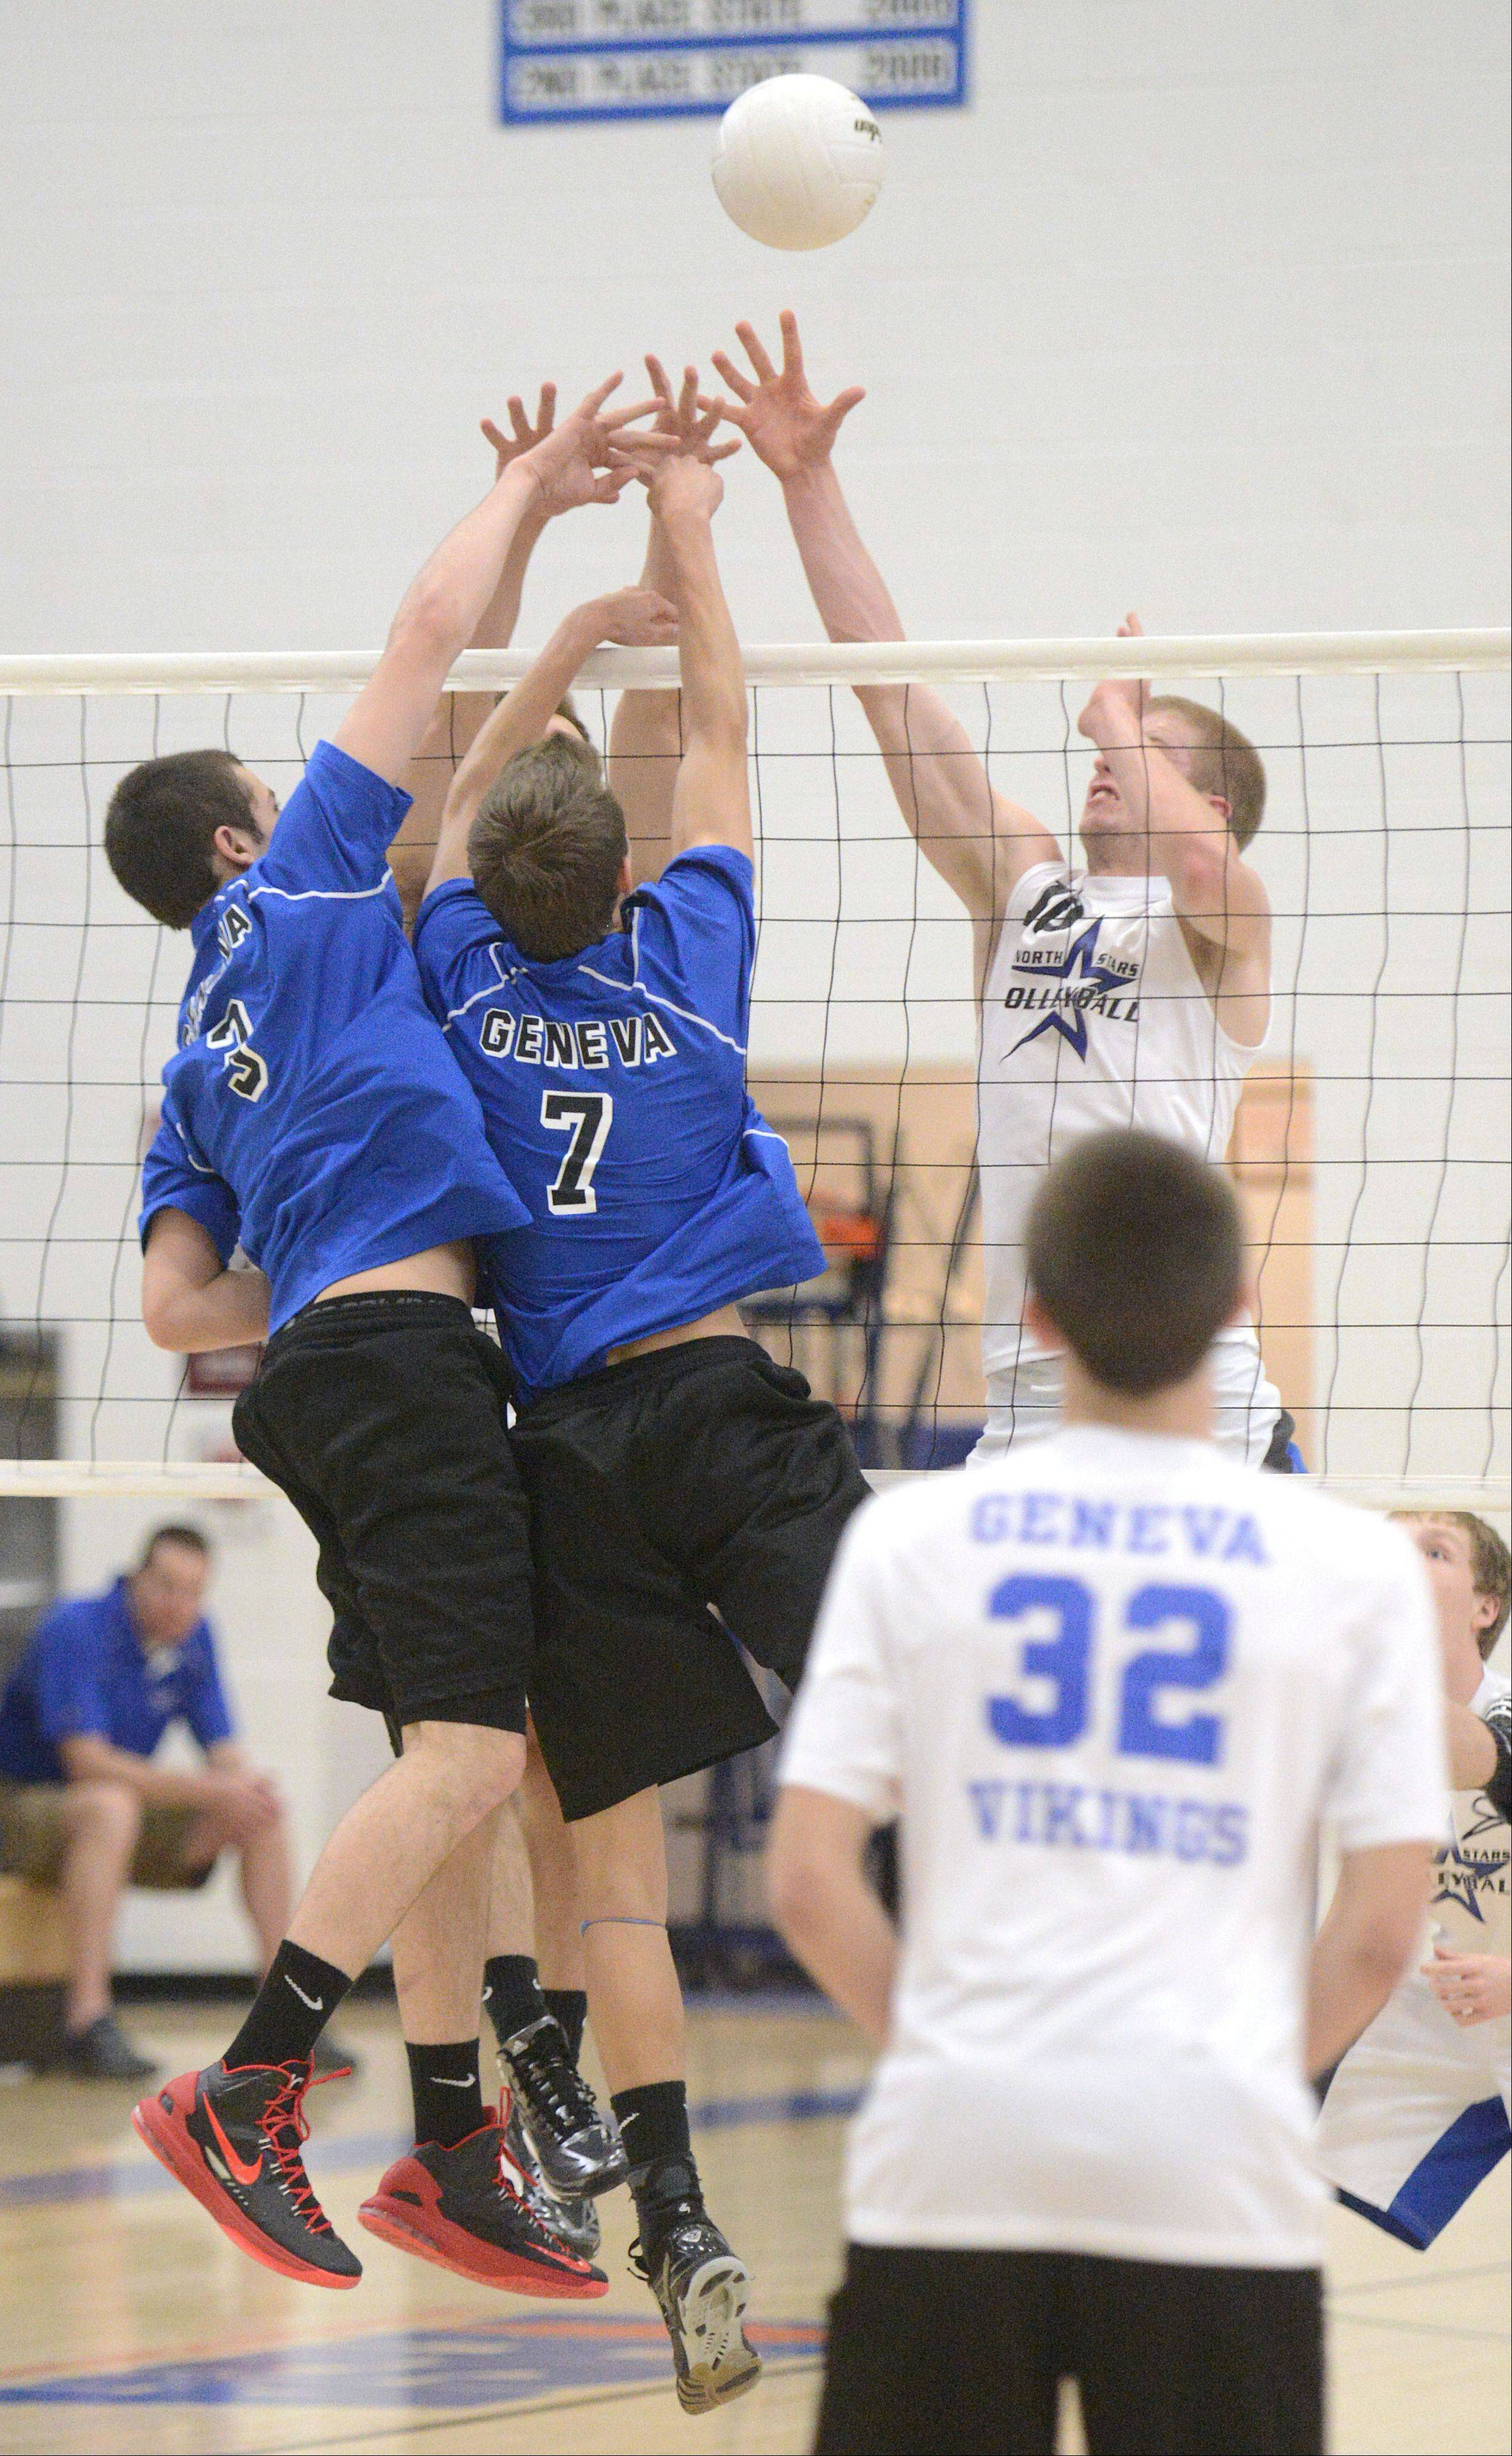 Geneva's Chris Parilli and Dominic Bondi battle St. Charles North's Pat Misiewicz and Kevin Beach at the net in the first match on Tuesday, May 7.